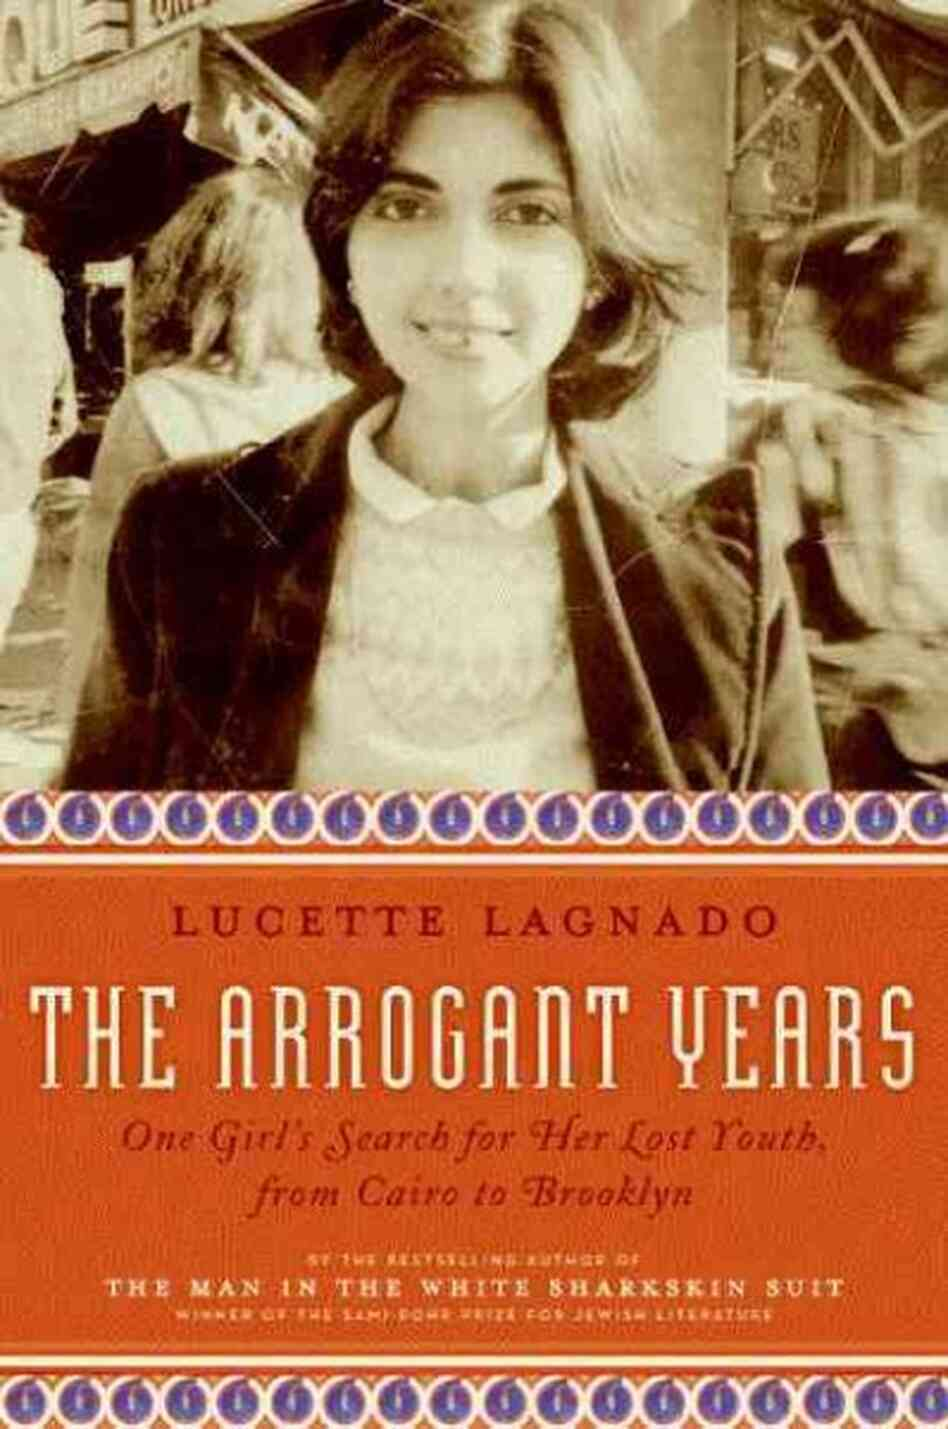 The Arrogant Years